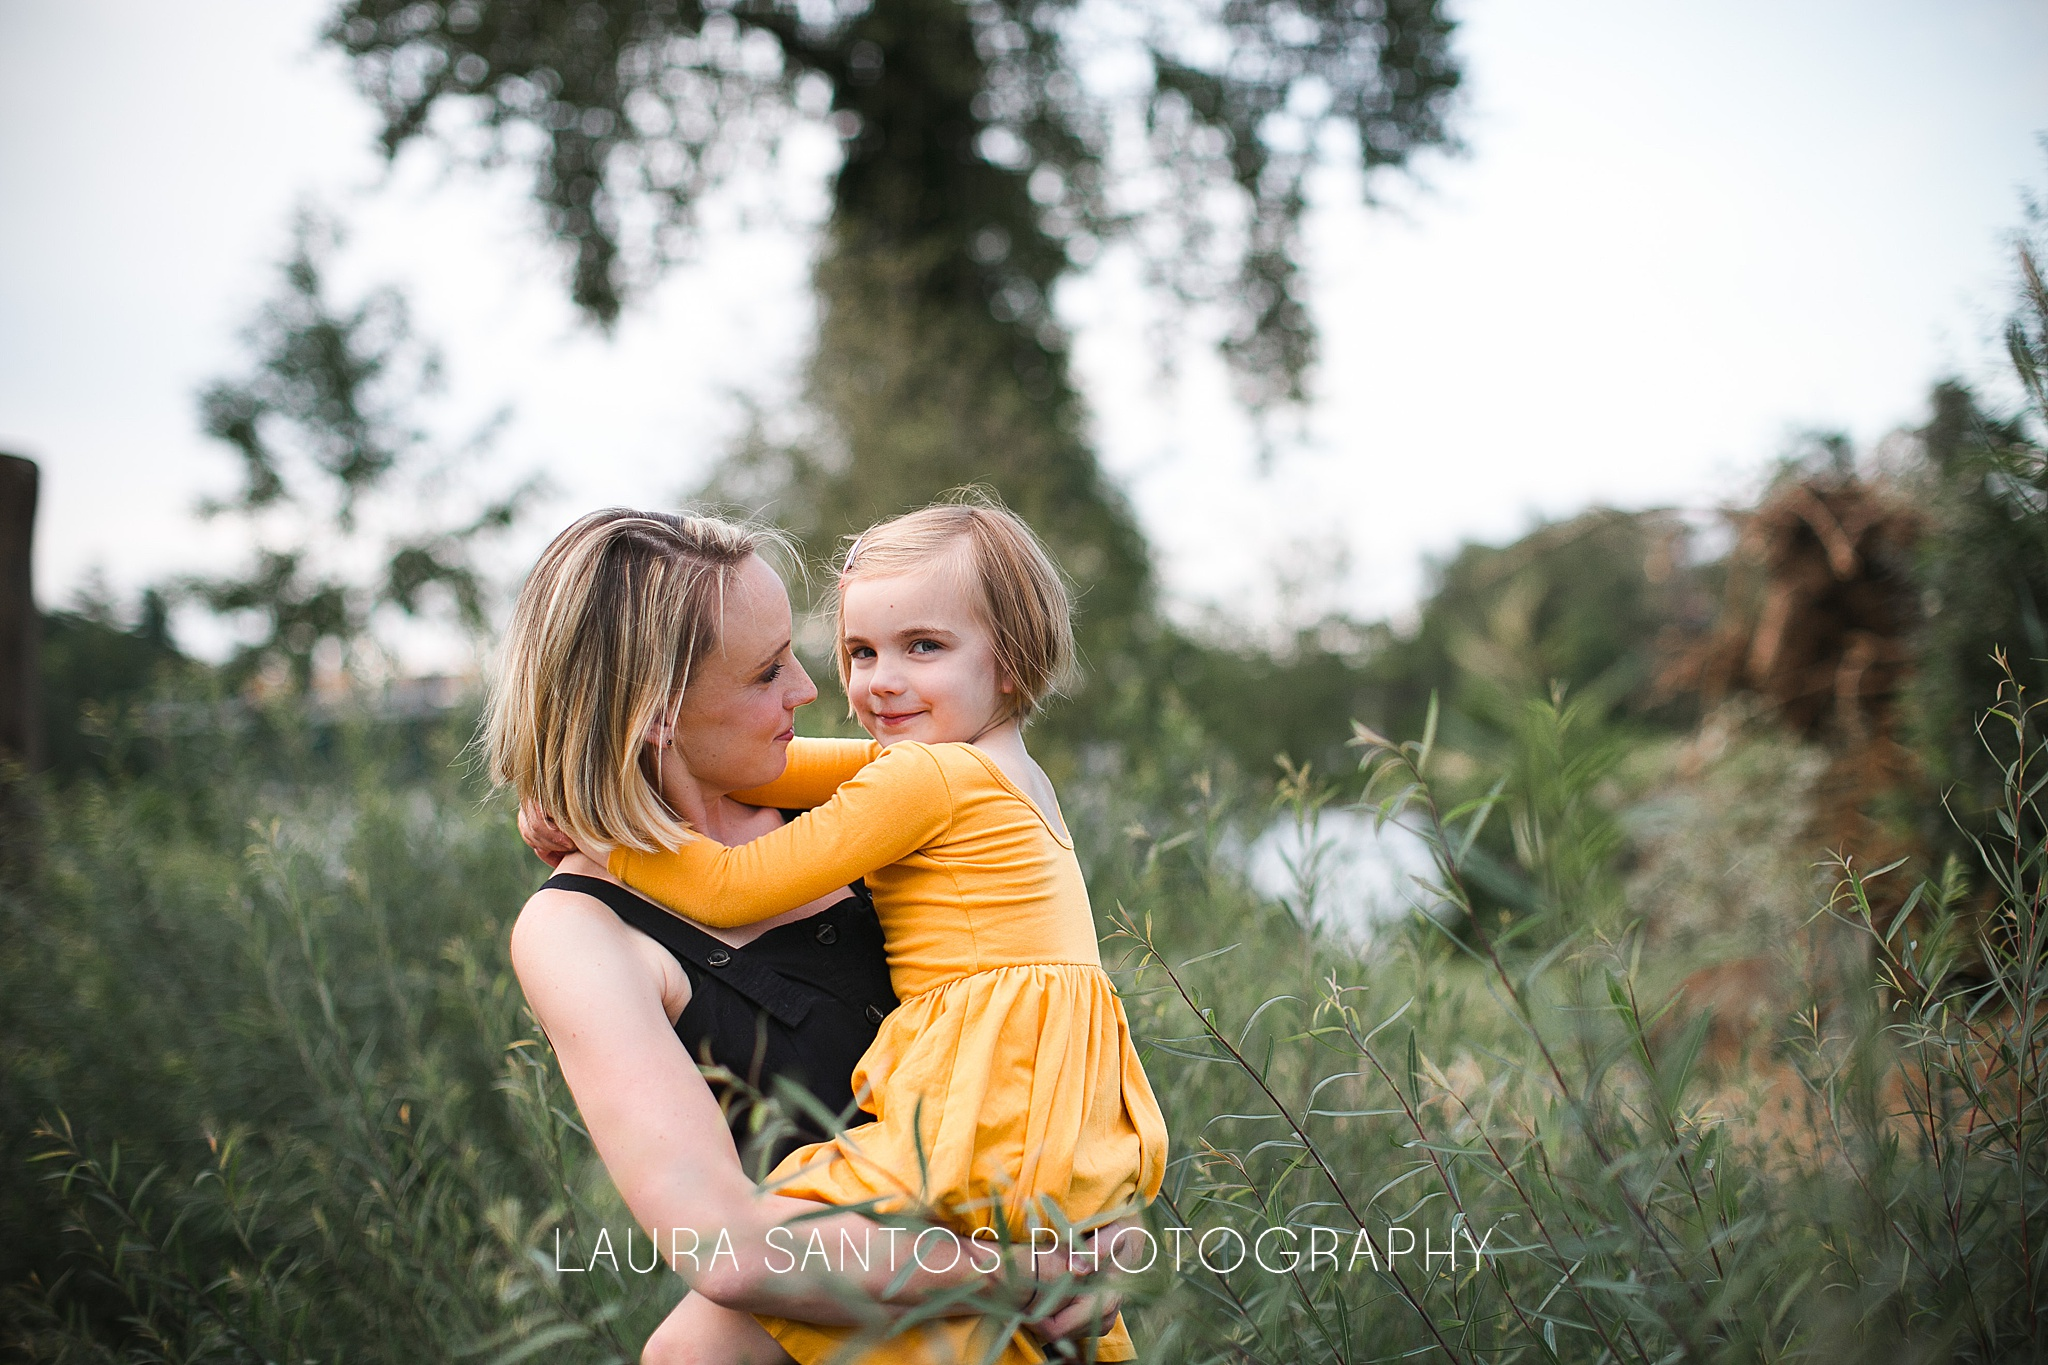 Laura Santos Photography Portland Oregon Family Photographer_1051.jpg